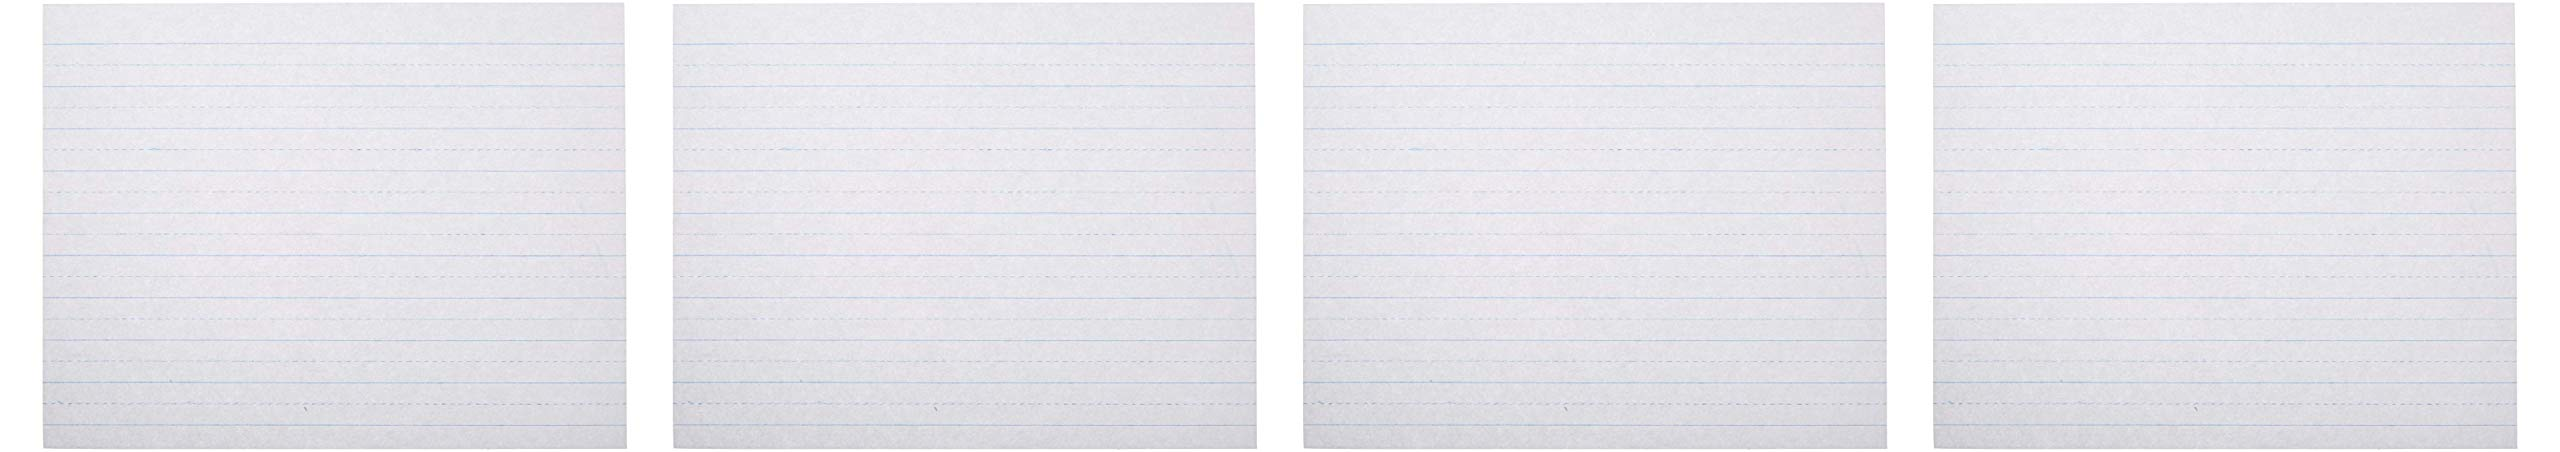 School Smart 085439 Alternate Ruled Paper Without Margin, 10.5'' Length, 8'' Width, White (Ream of 500) (Fоur Paсk) by School Smart